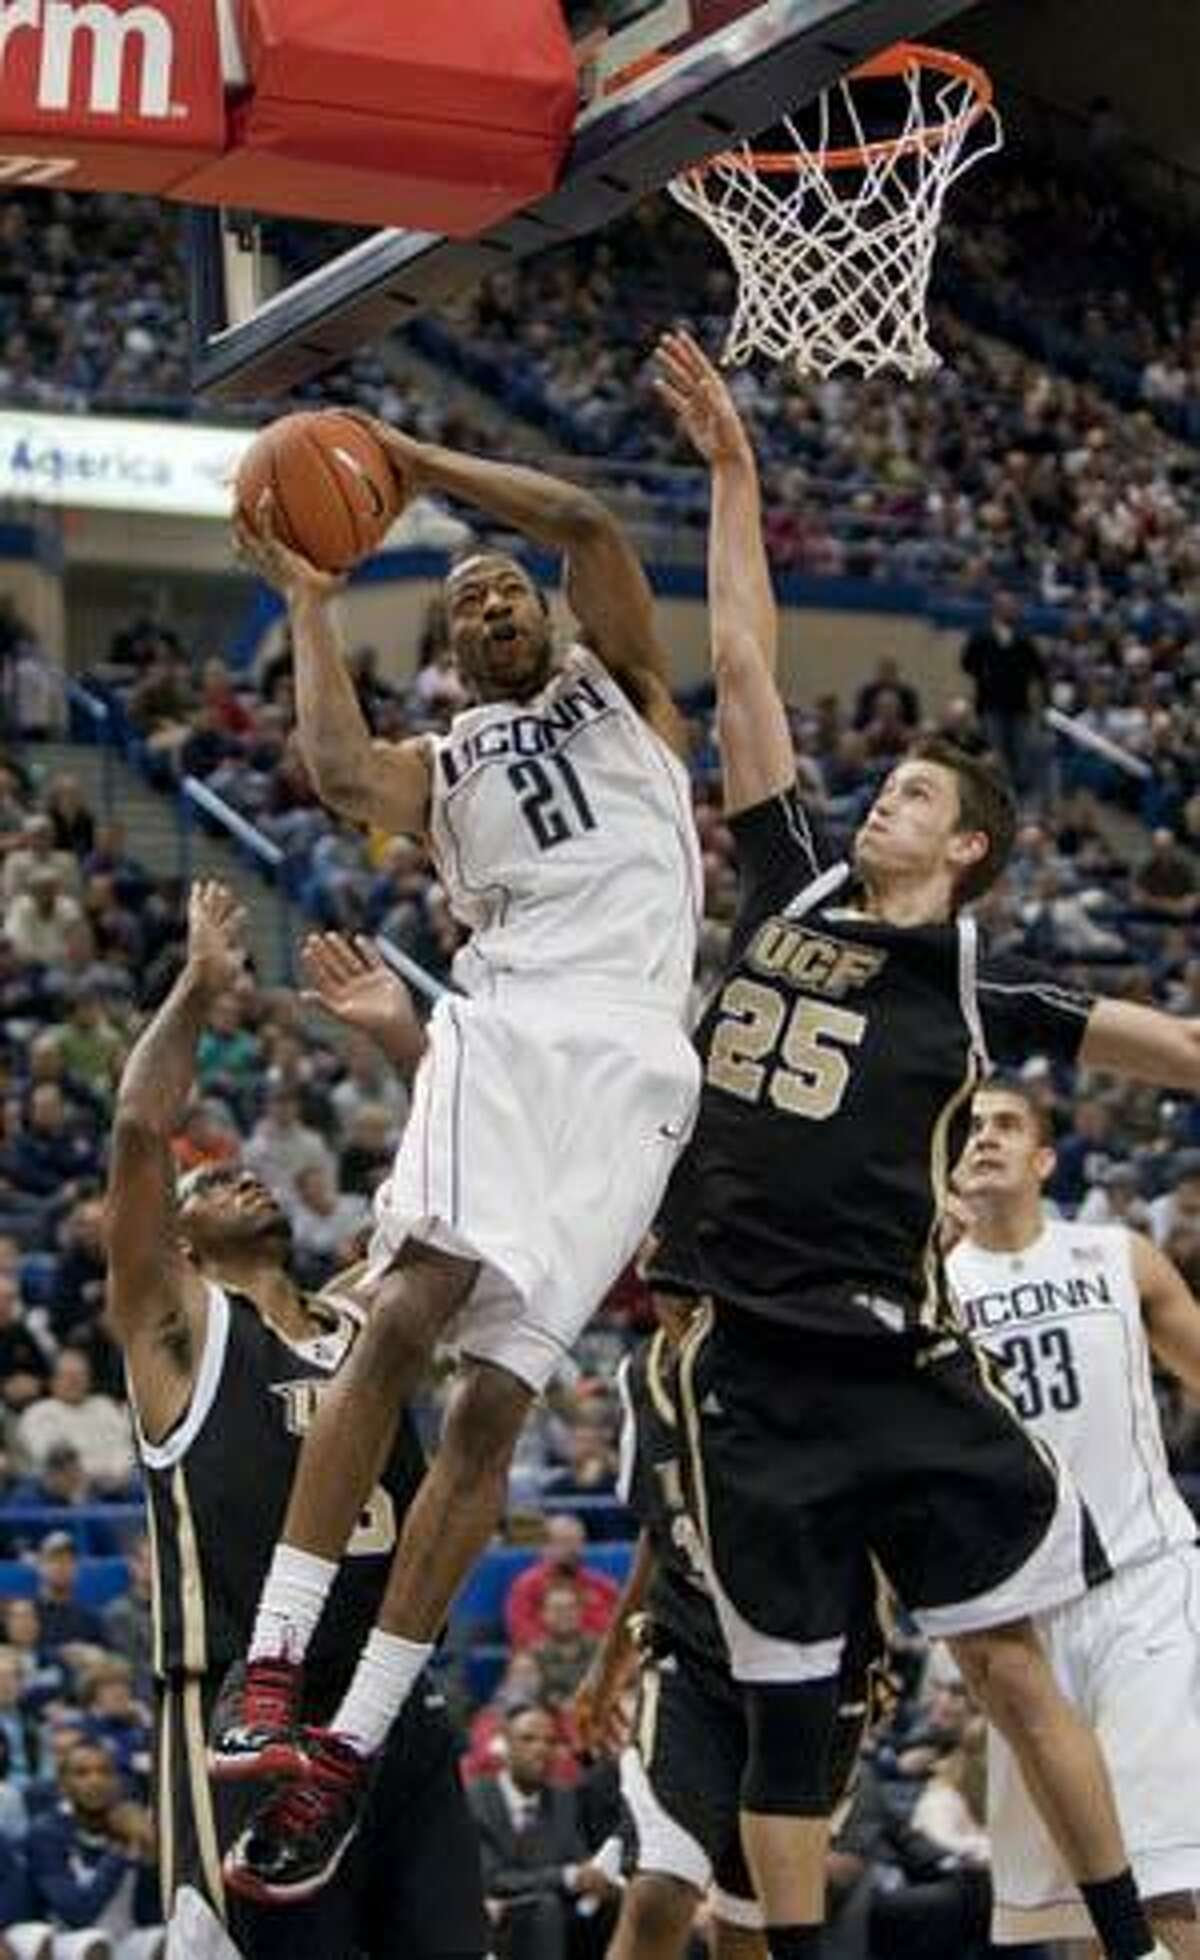 Connecticut's Stanley Robinson, middle, dunks the ball while being guarded by Central Florida's A.J. Tyler, right, and Marcus Jordan, left, during the second half of Connecticut's 60-51 victory over Central Florida Sunday in Hartford.